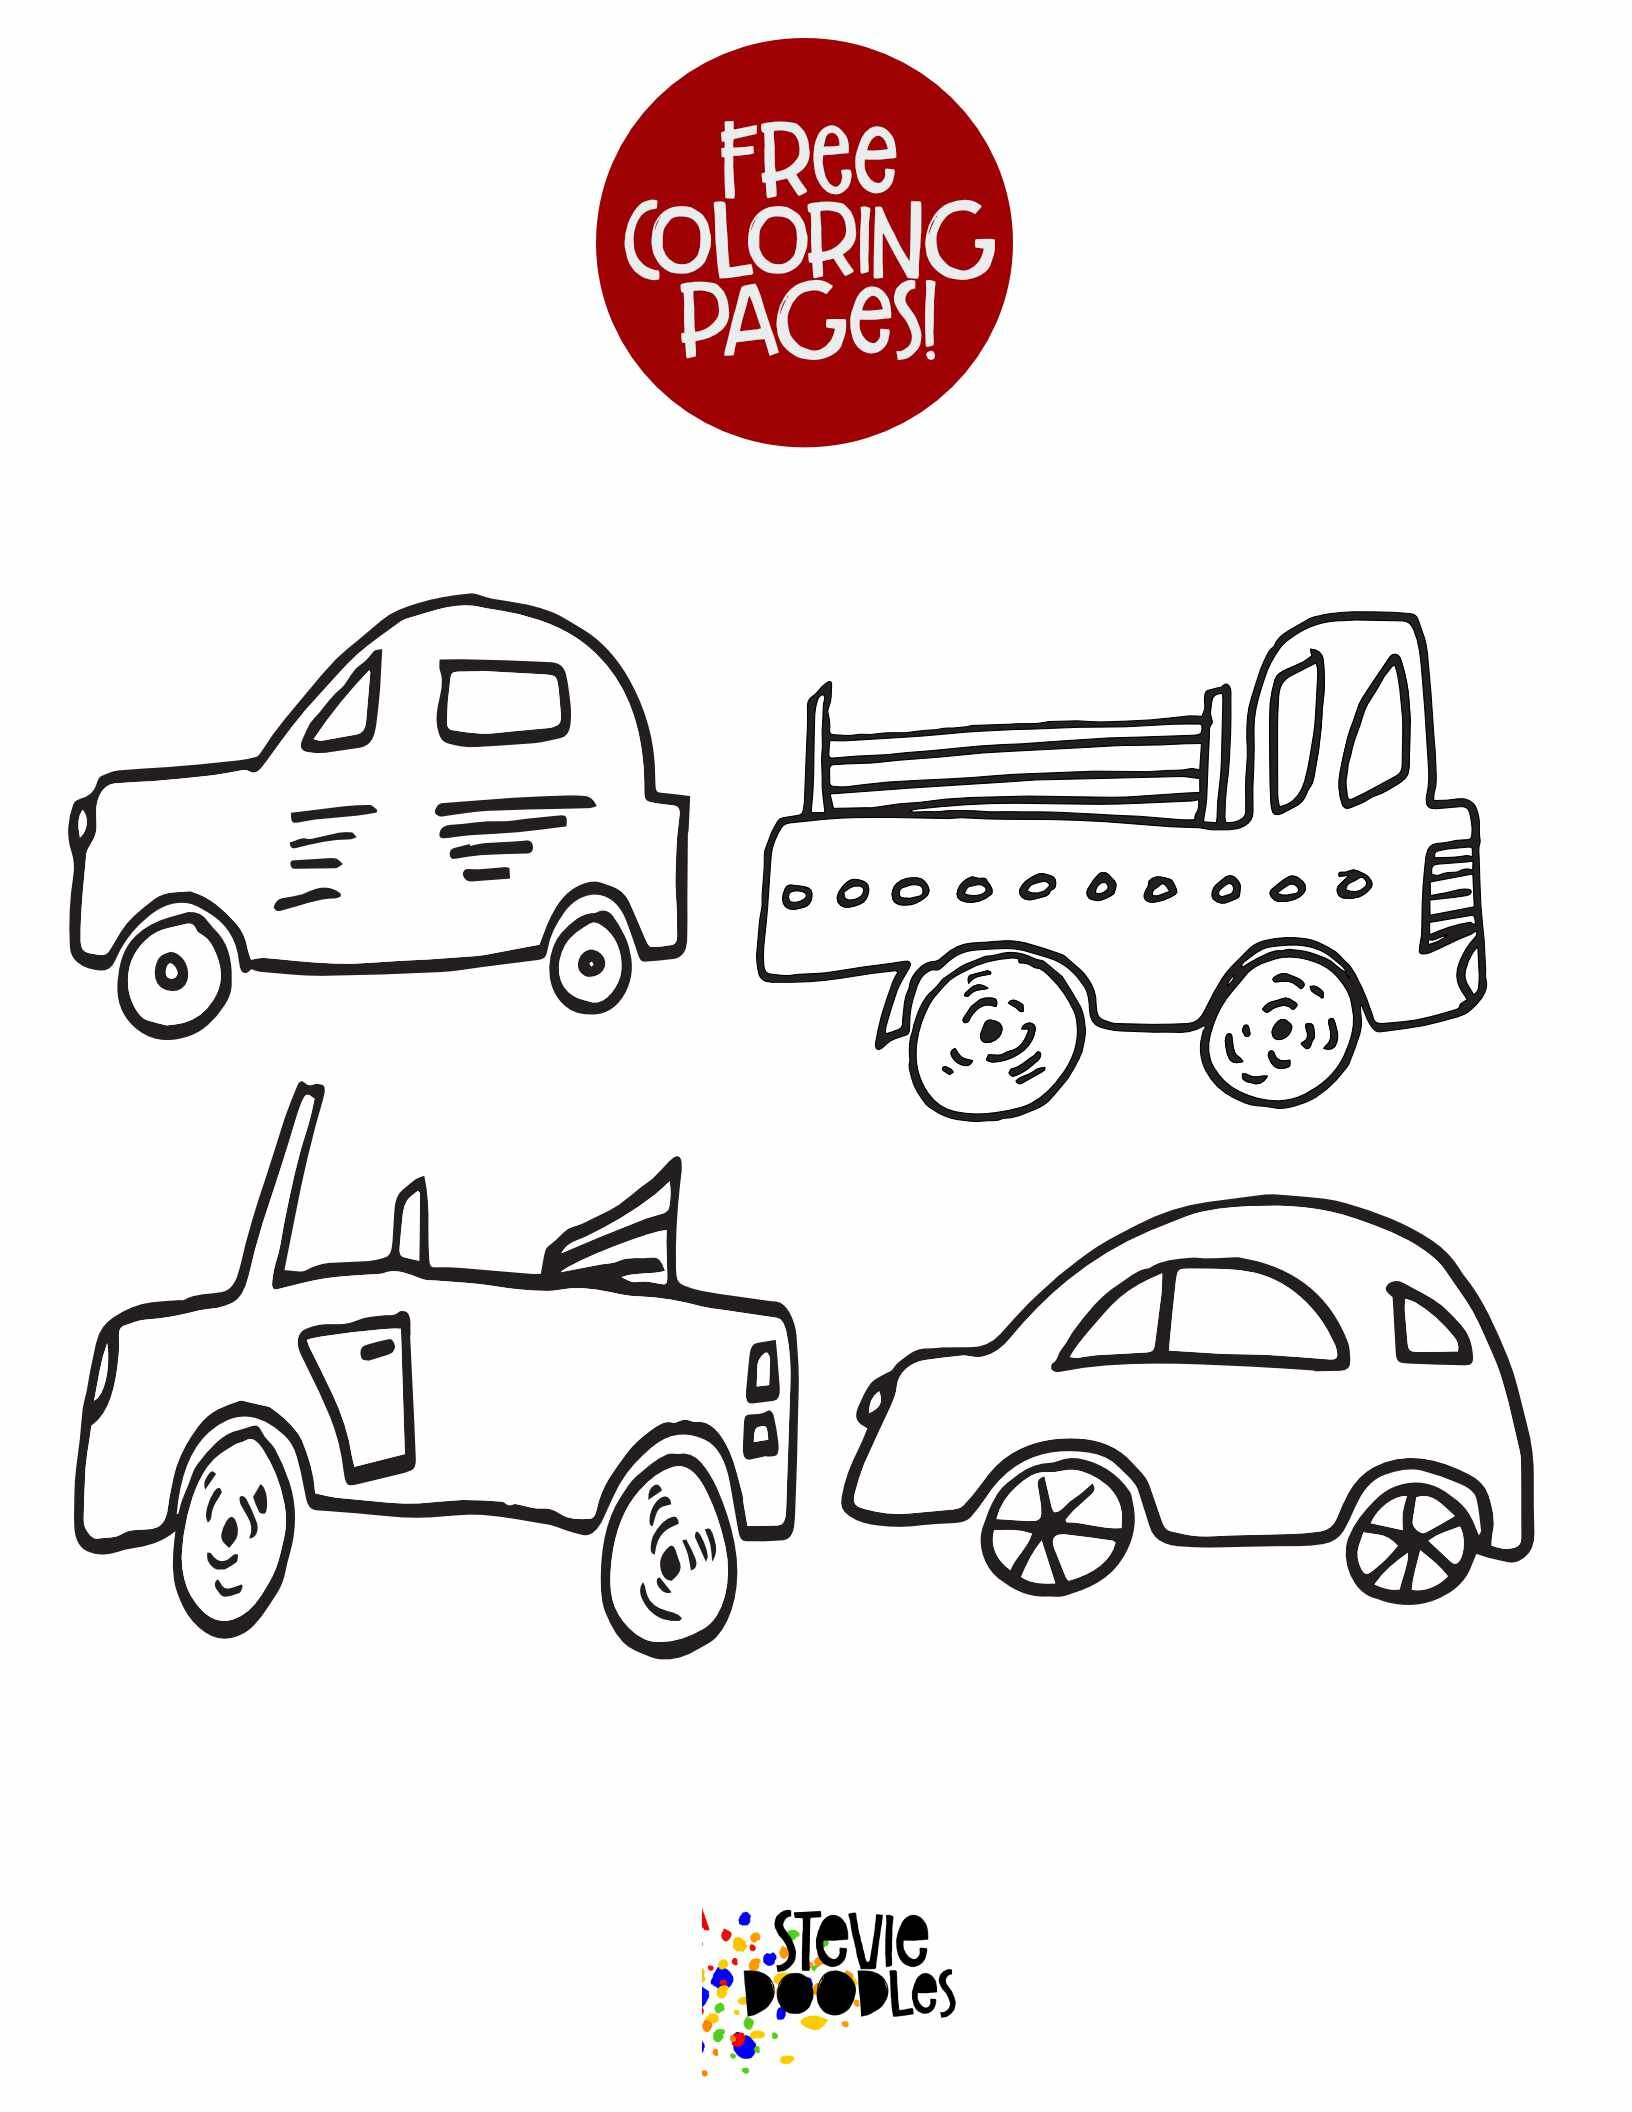 4 Little Cars Free Printable Coloring Page 1 Stevie Doodles Free Printable Coloring Pages